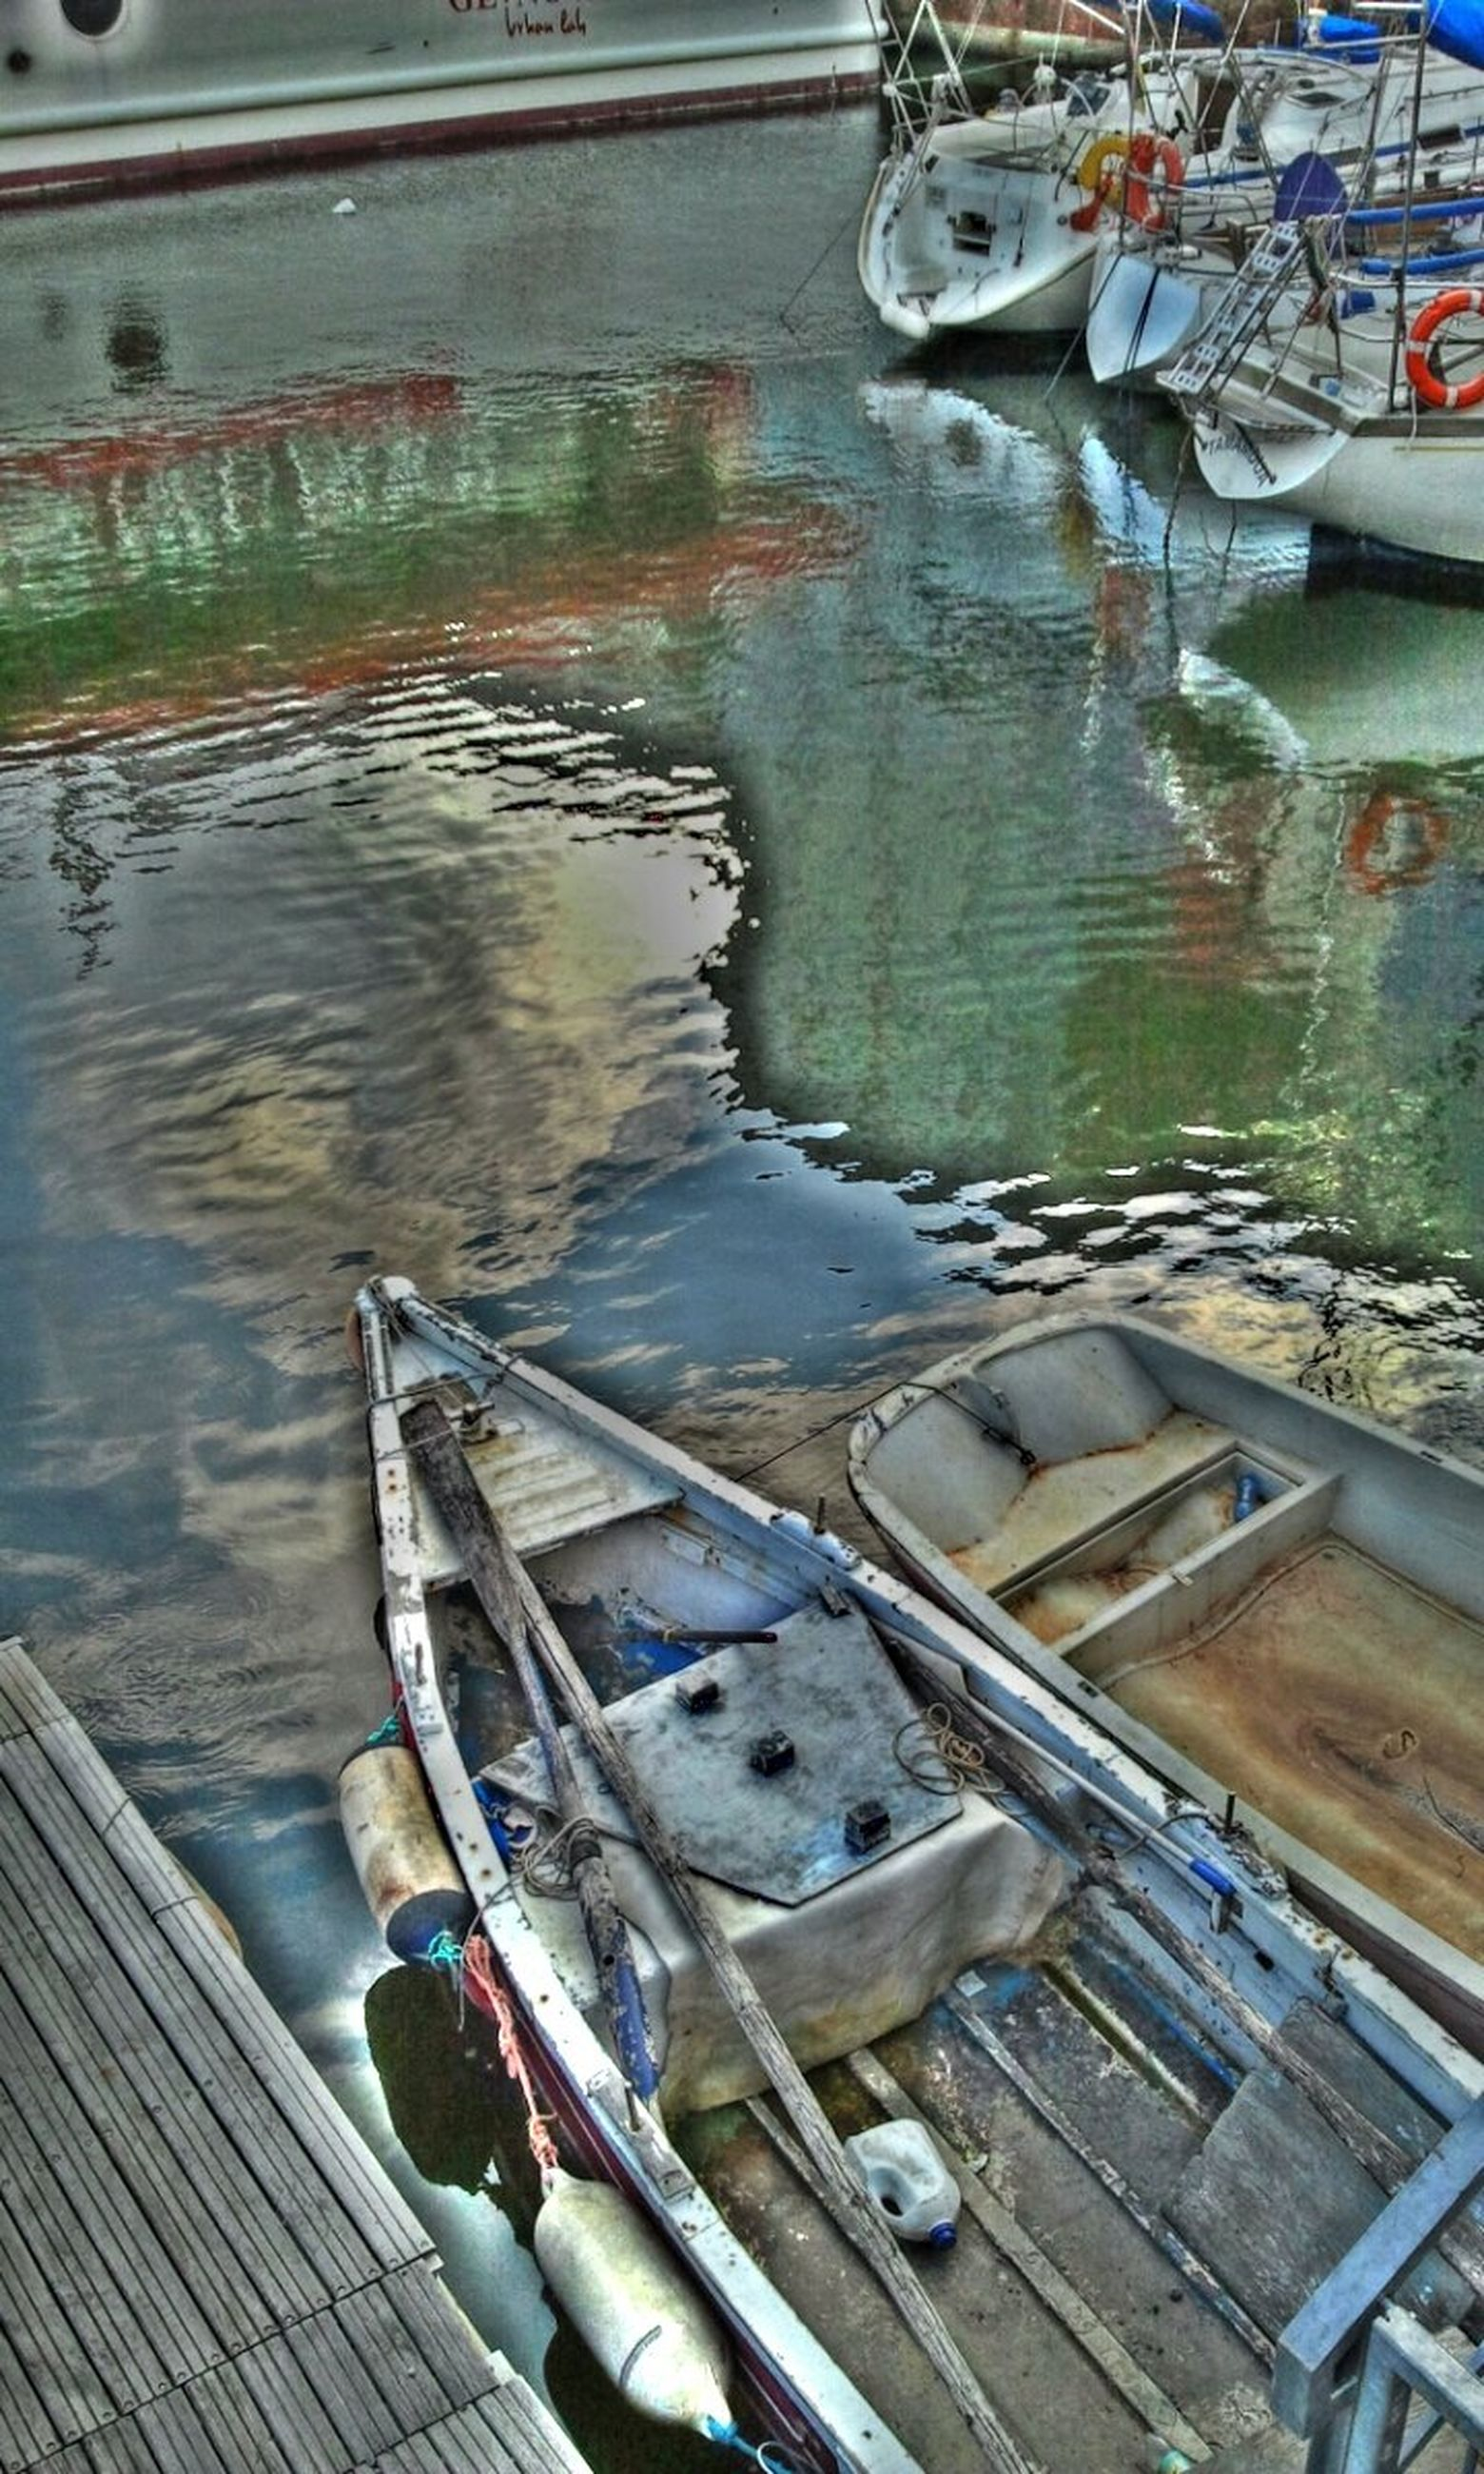 transportation, water, mode of transport, nautical vessel, moored, boat, high angle view, harbor, reflection, canal, river, day, outdoors, no people, lake, travel, land vehicle, pier, built structure, rippled